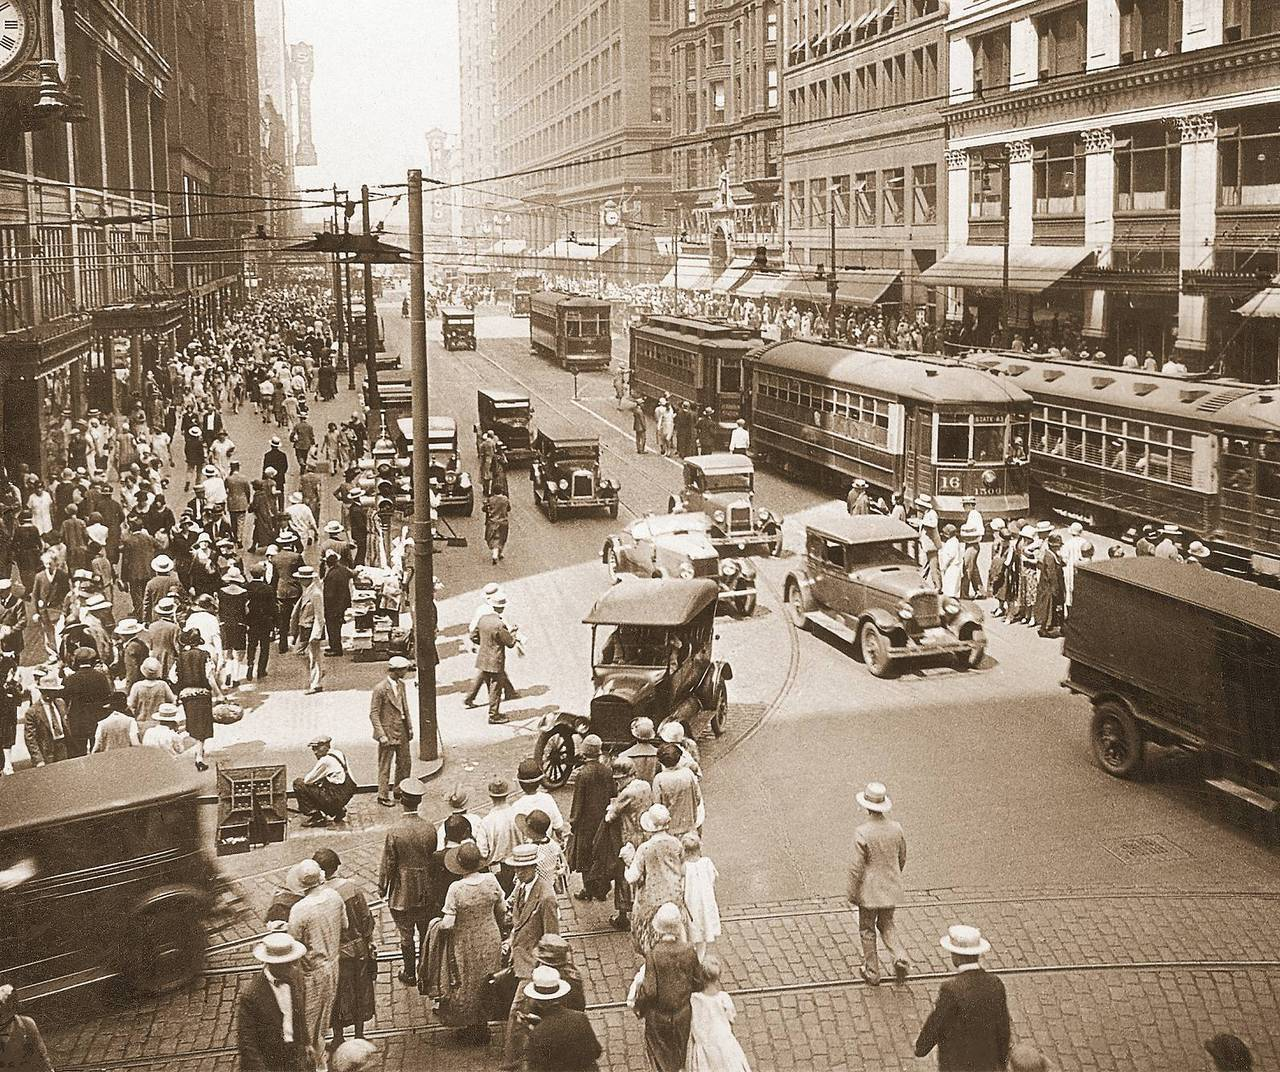 old-chicago:  1920s. State St. Looking North from Madison. Chicago Theater and State-Lake in the distance.